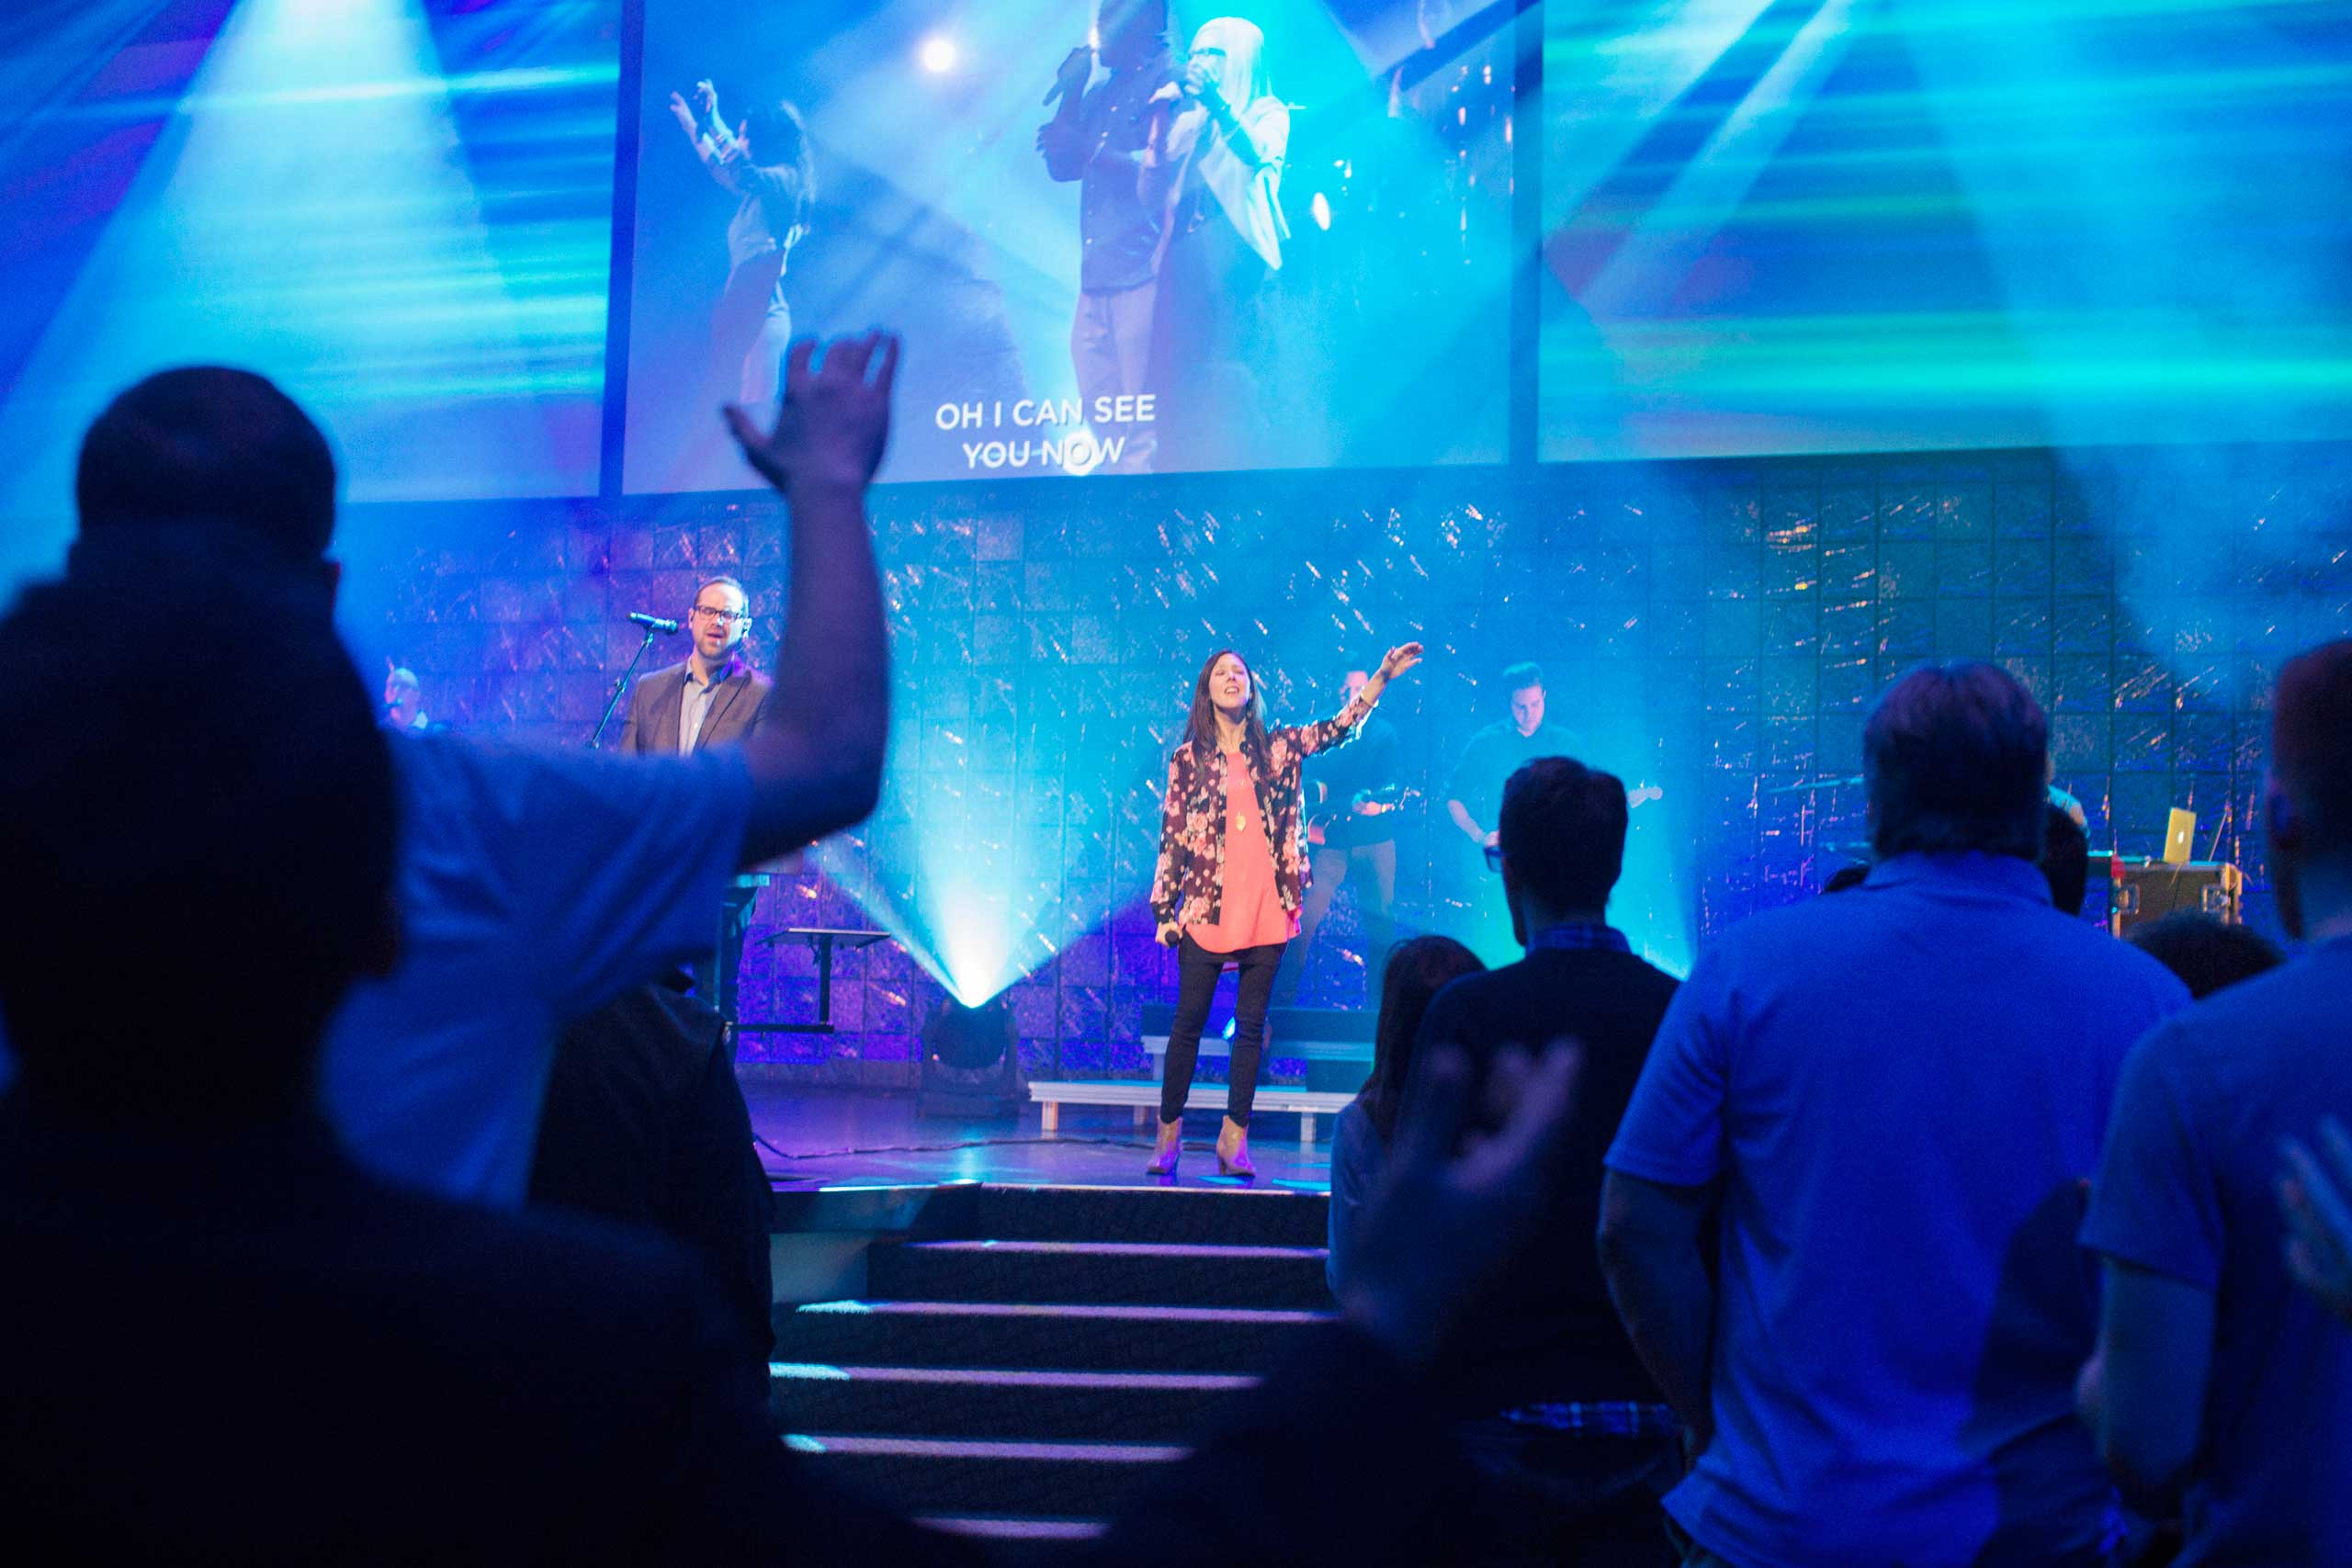 Services at Church of the Highlands, a  mega-church, in Birmingham, Ala. on March 22, 2015.                                                                                                         In a region with plenty of large houses of worship, Church of the Highlands -- one of the fastest-growing churches in America -- may be the largest. Sunday worship service at Grants Mill—headquarters for a dozen campuses—averages over 3,500 people, mostly couples in their 30s with young kids. That number is up from 600 in 2001, and there are some 31,000 weekly worshippers across the 12 sites.